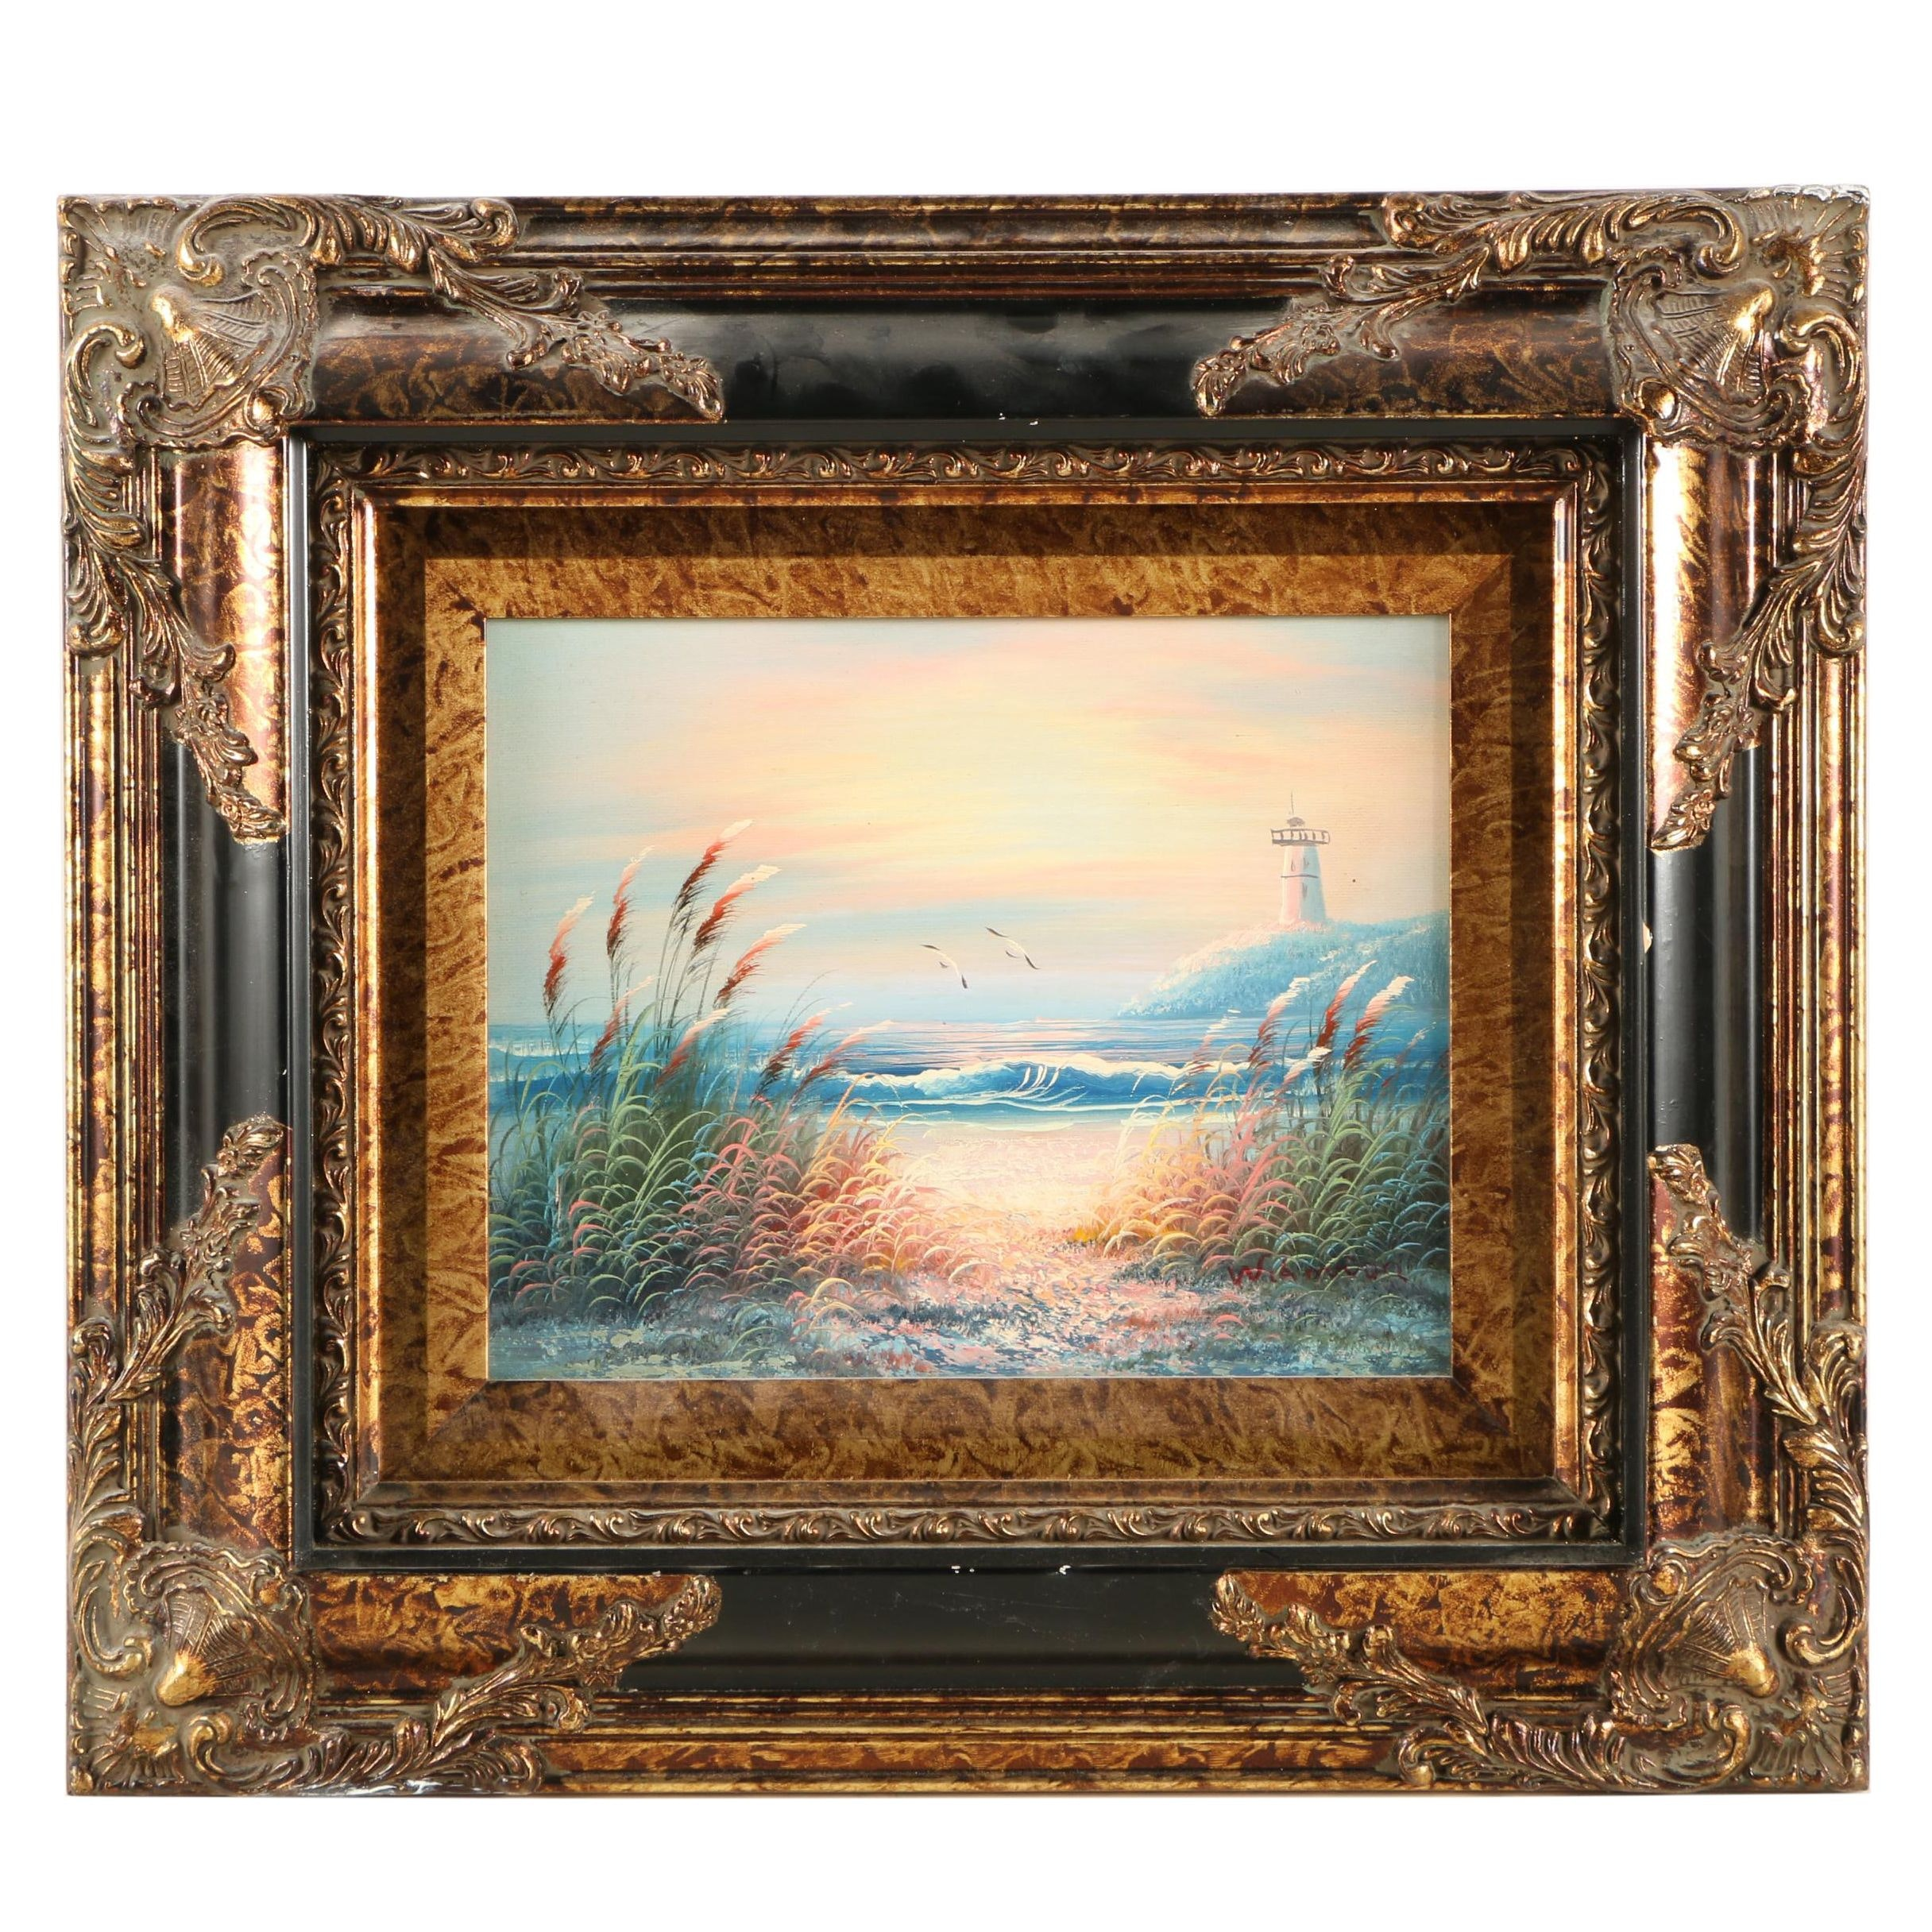 Oil Painting on Canvas of a Beach Scene